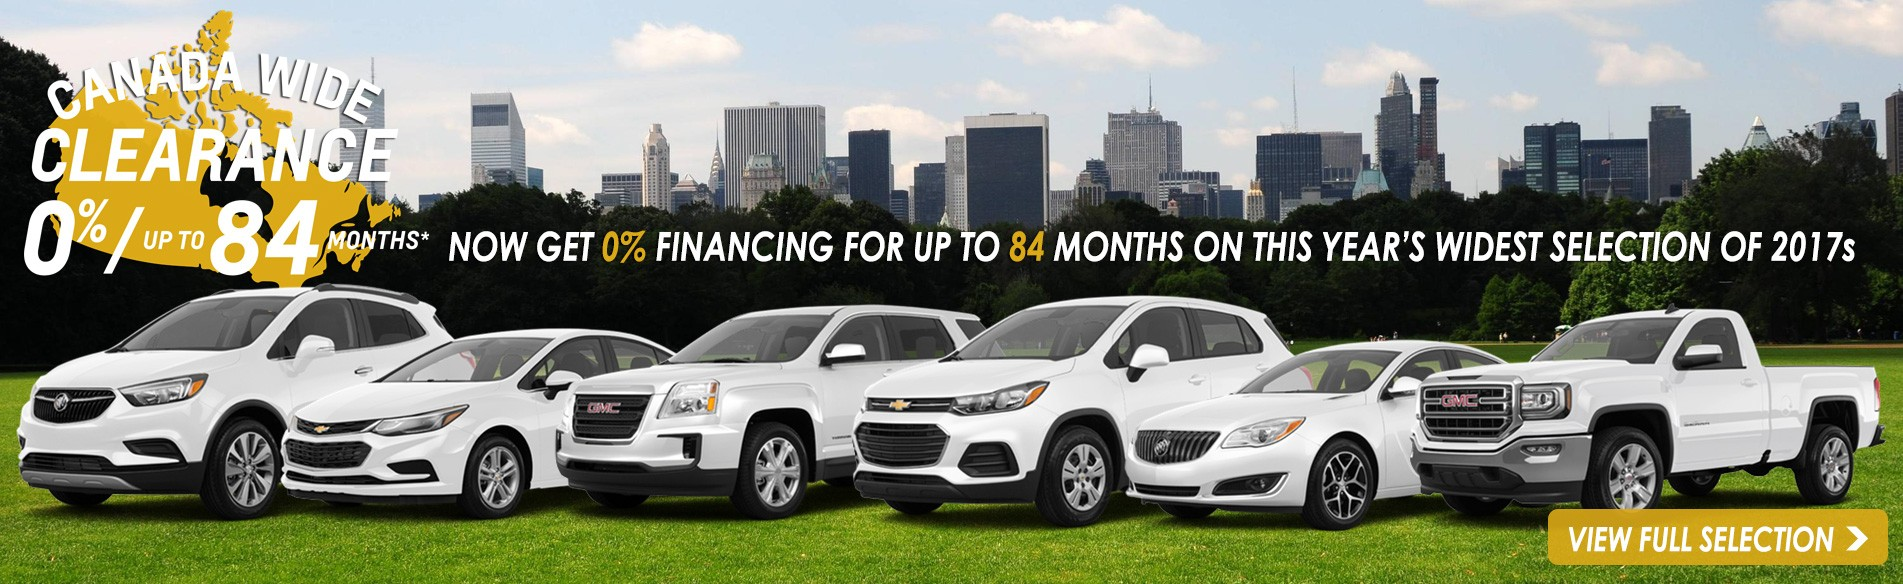 Now get 0% financing for up to 84 months on this year's widest selection of 2017 Chevrolet, GMC and Buick cars, trucks and SUVs in Georgetown Ontario